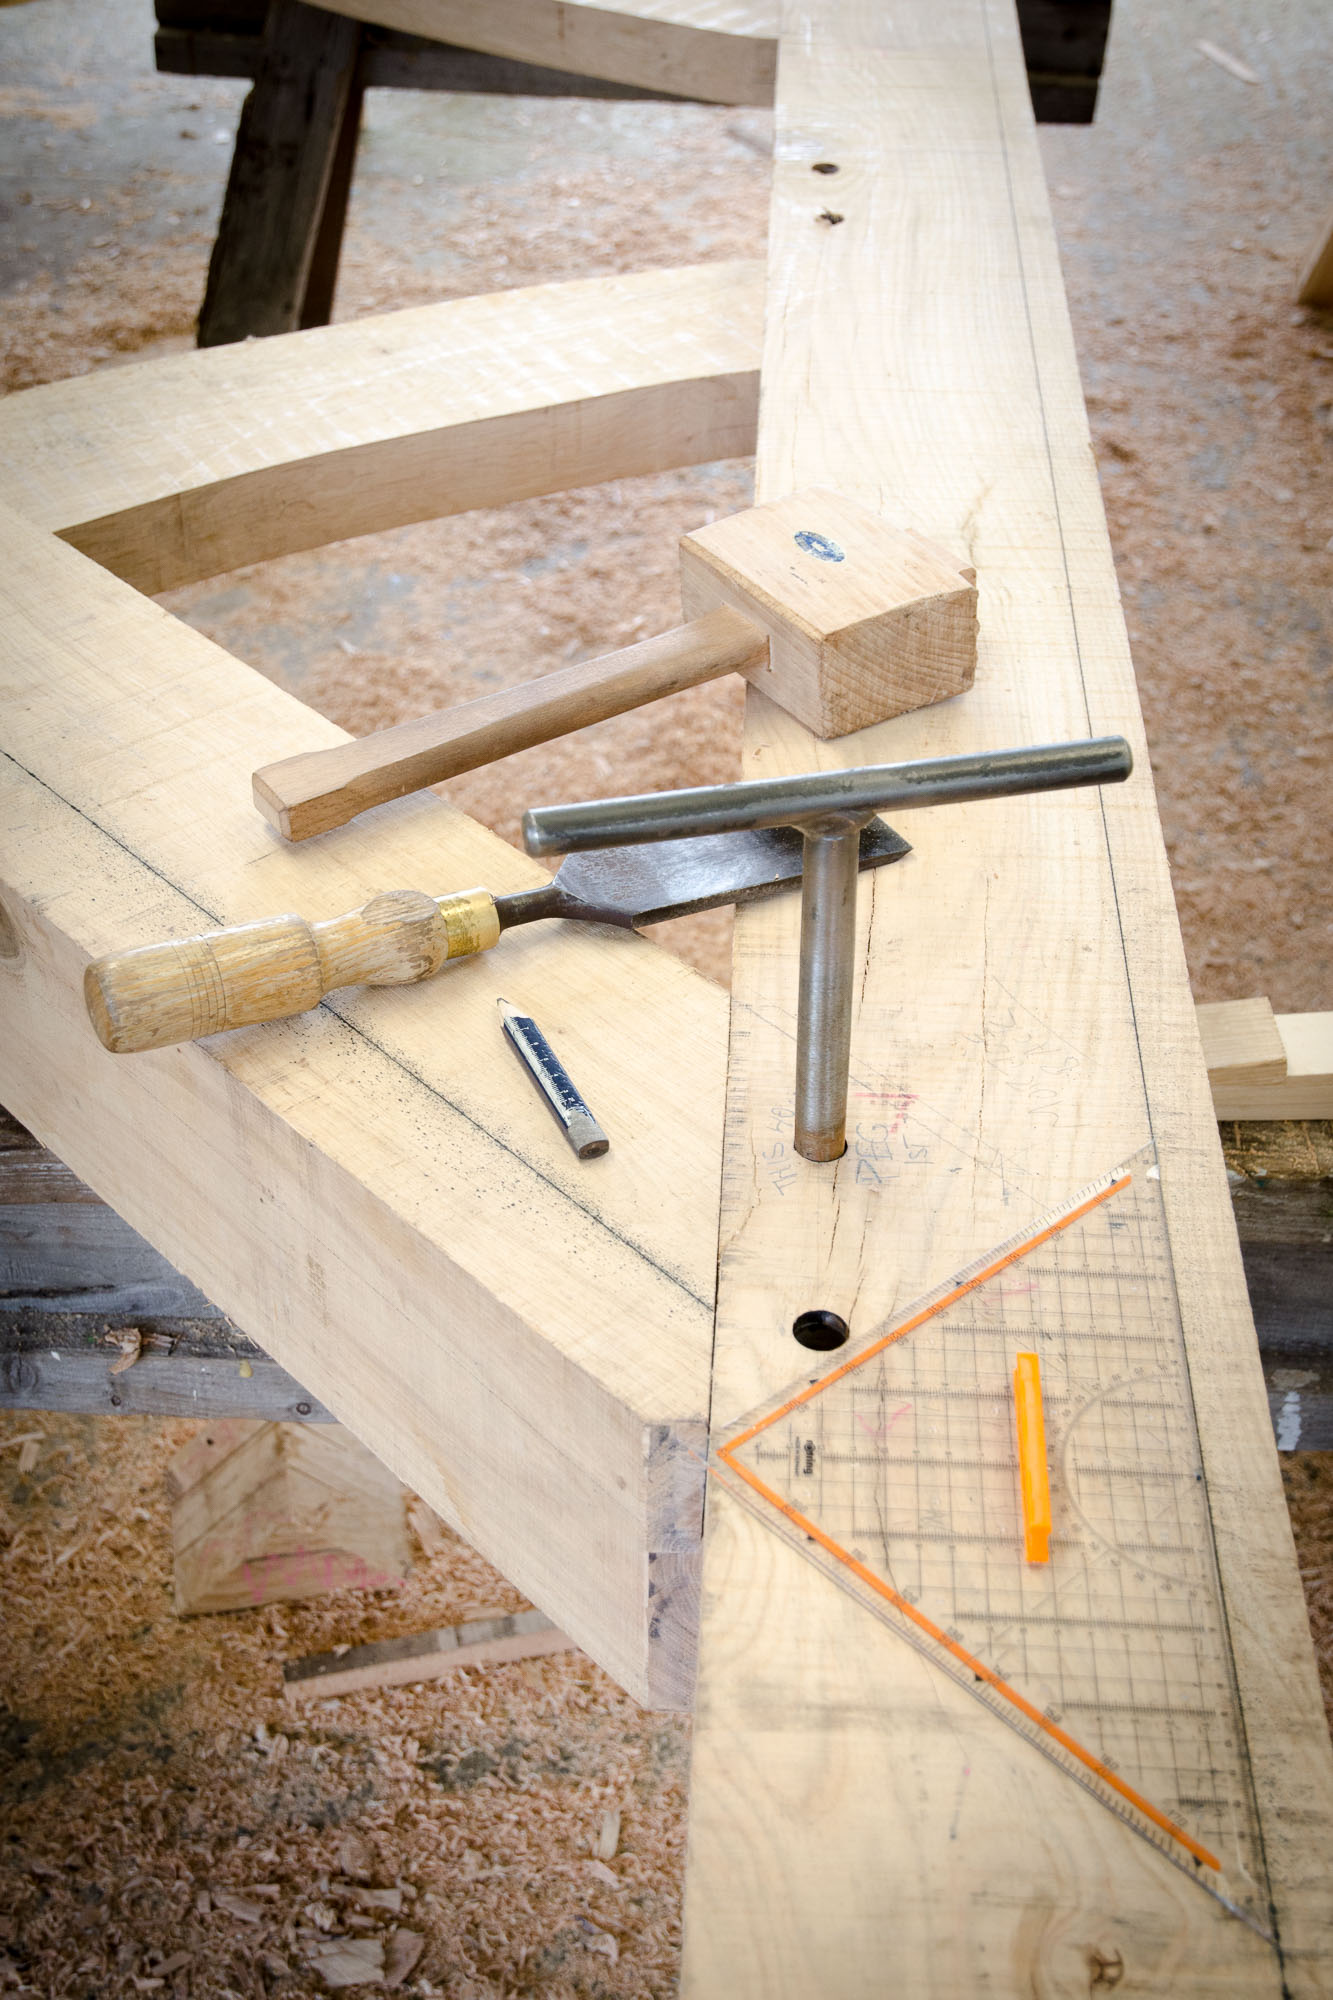 cabin building with oak timber framing using chisels and hammer